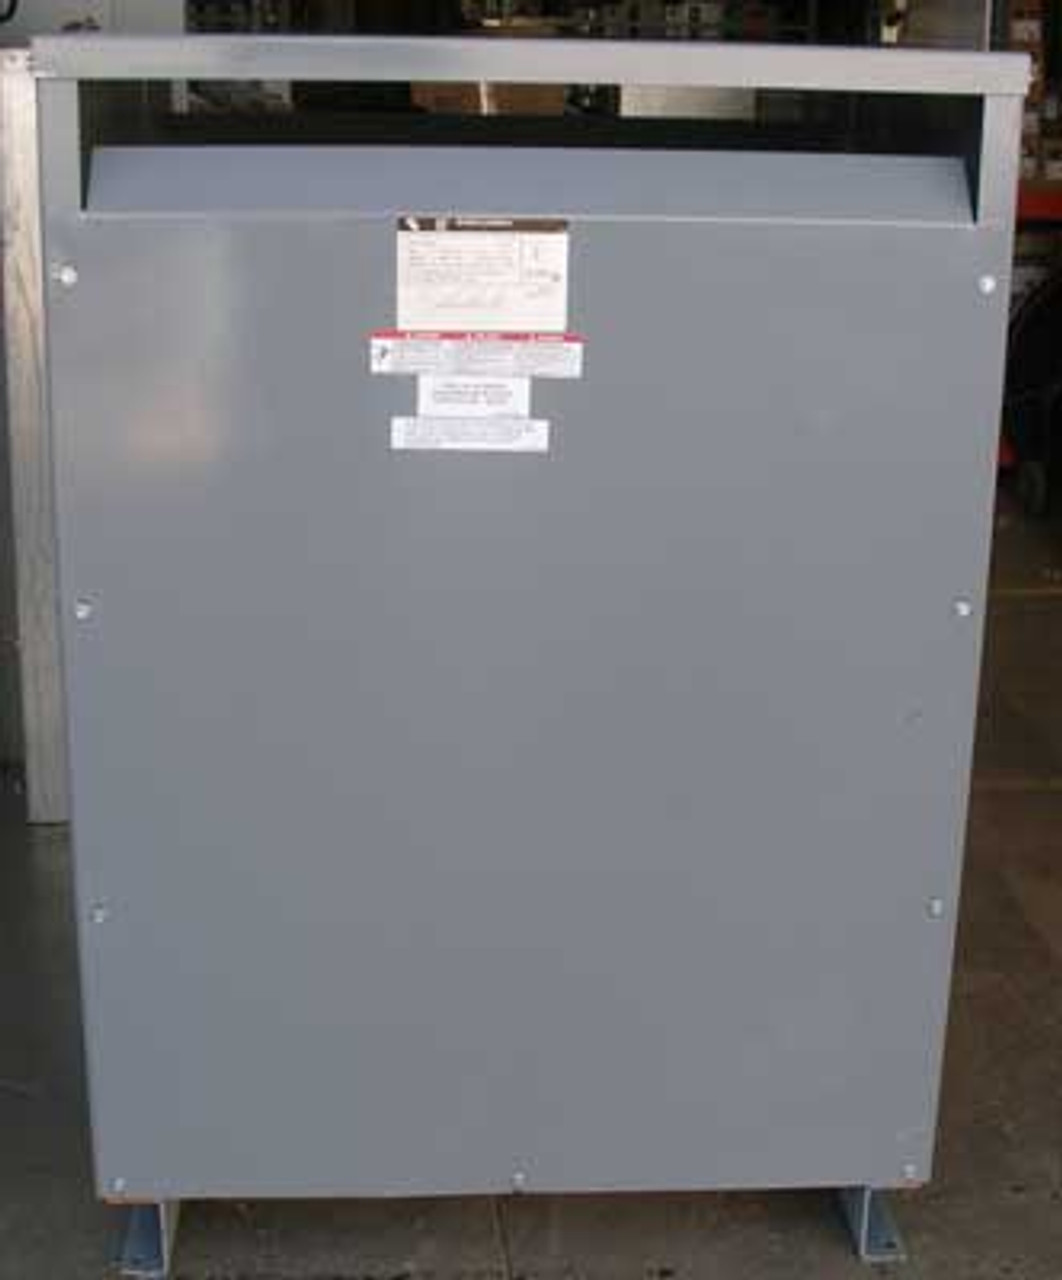 Square D 225T76HIS 225 KVA 480 to 480Y/277V 3 Phase Transformer - Reconditioned